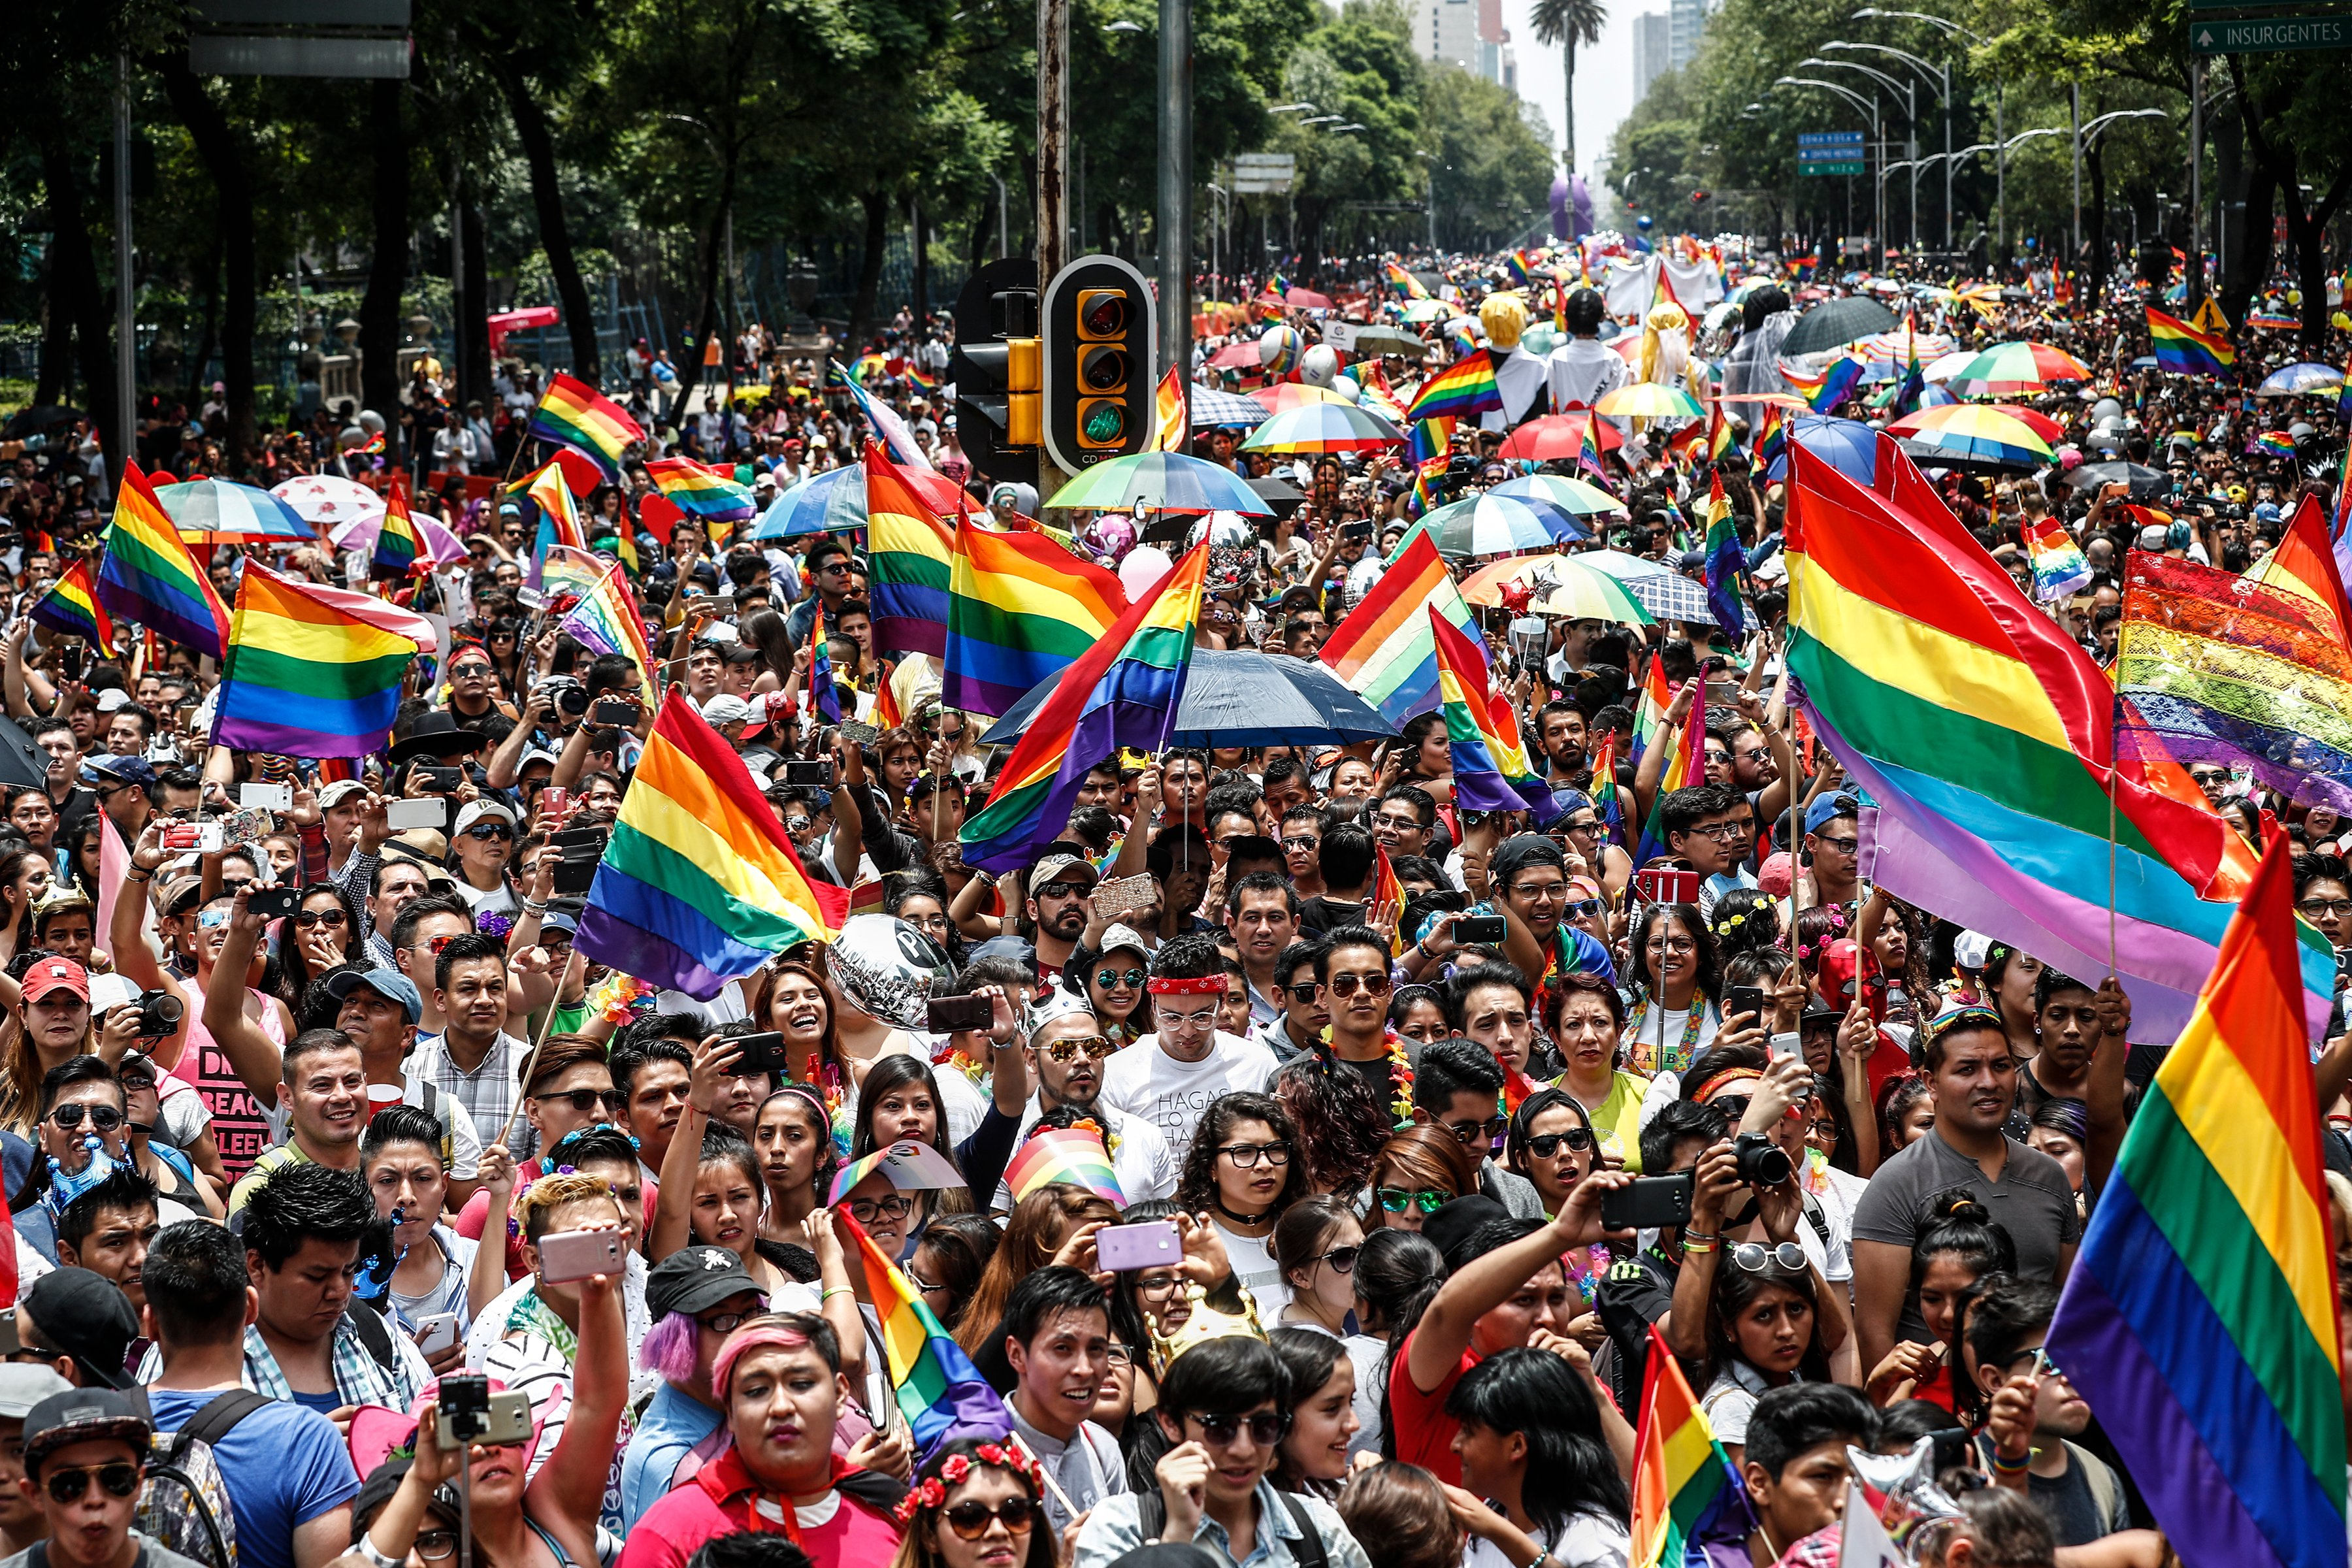 40th anniversary of Gay Pride in Mexico